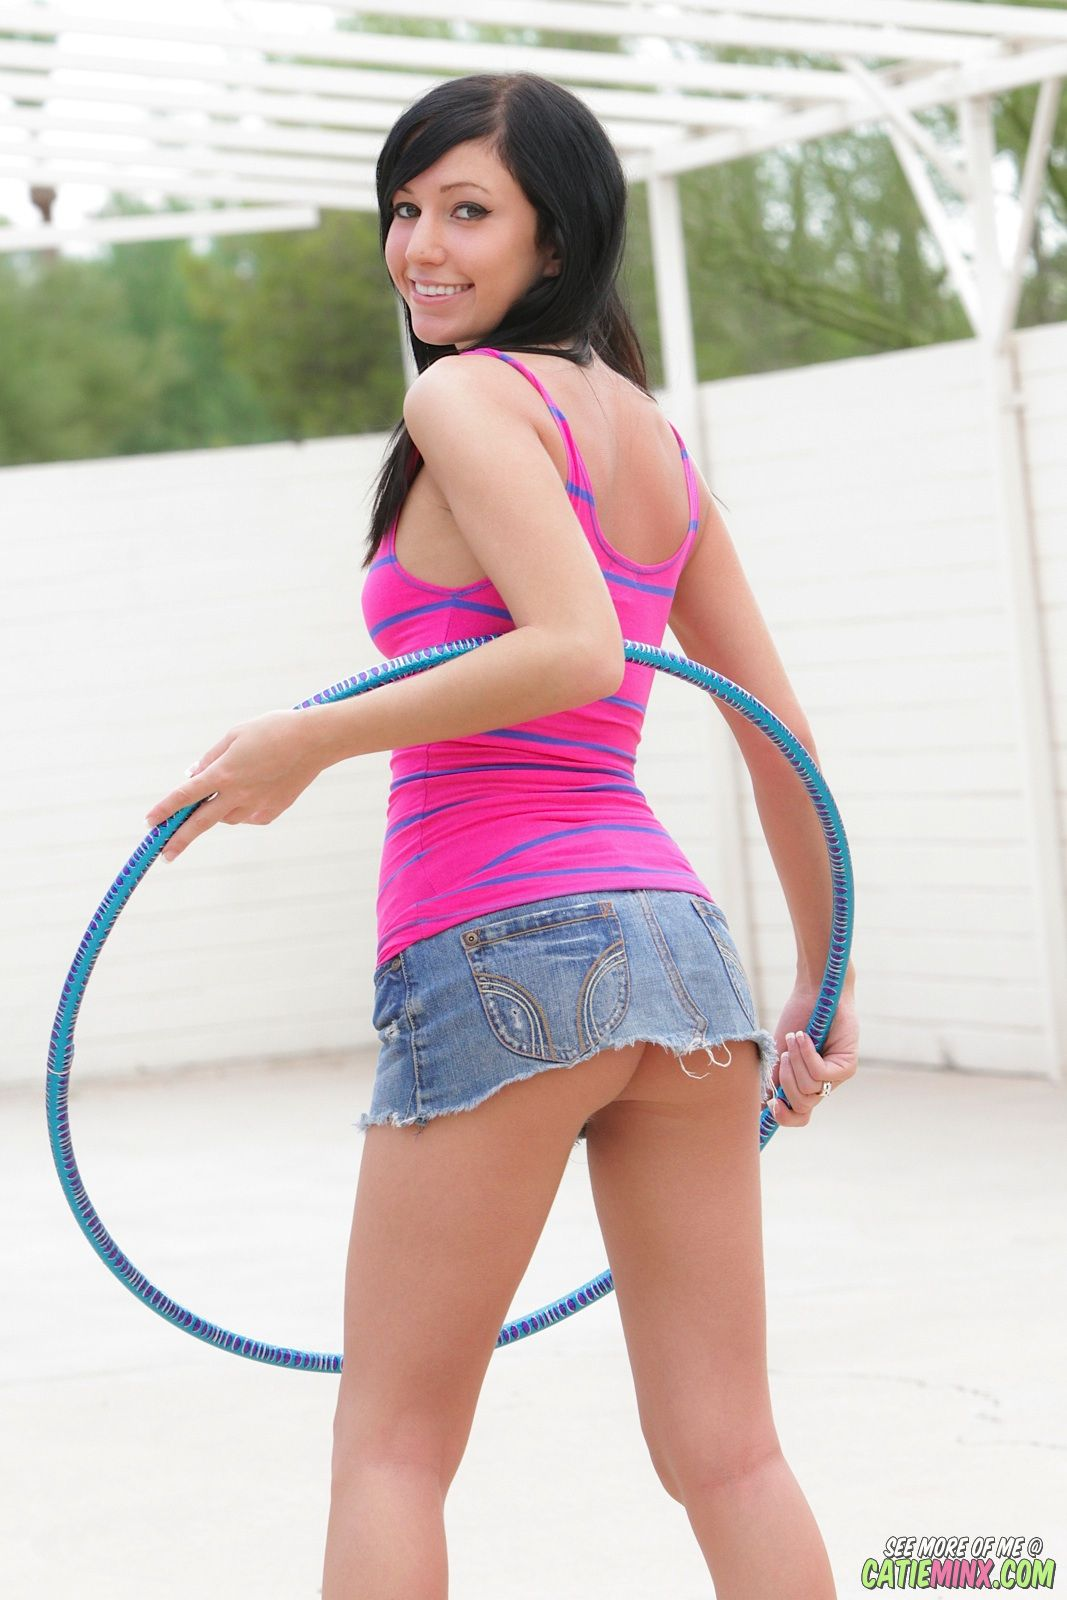 Topic hula hoop lesson turns into porn other variant